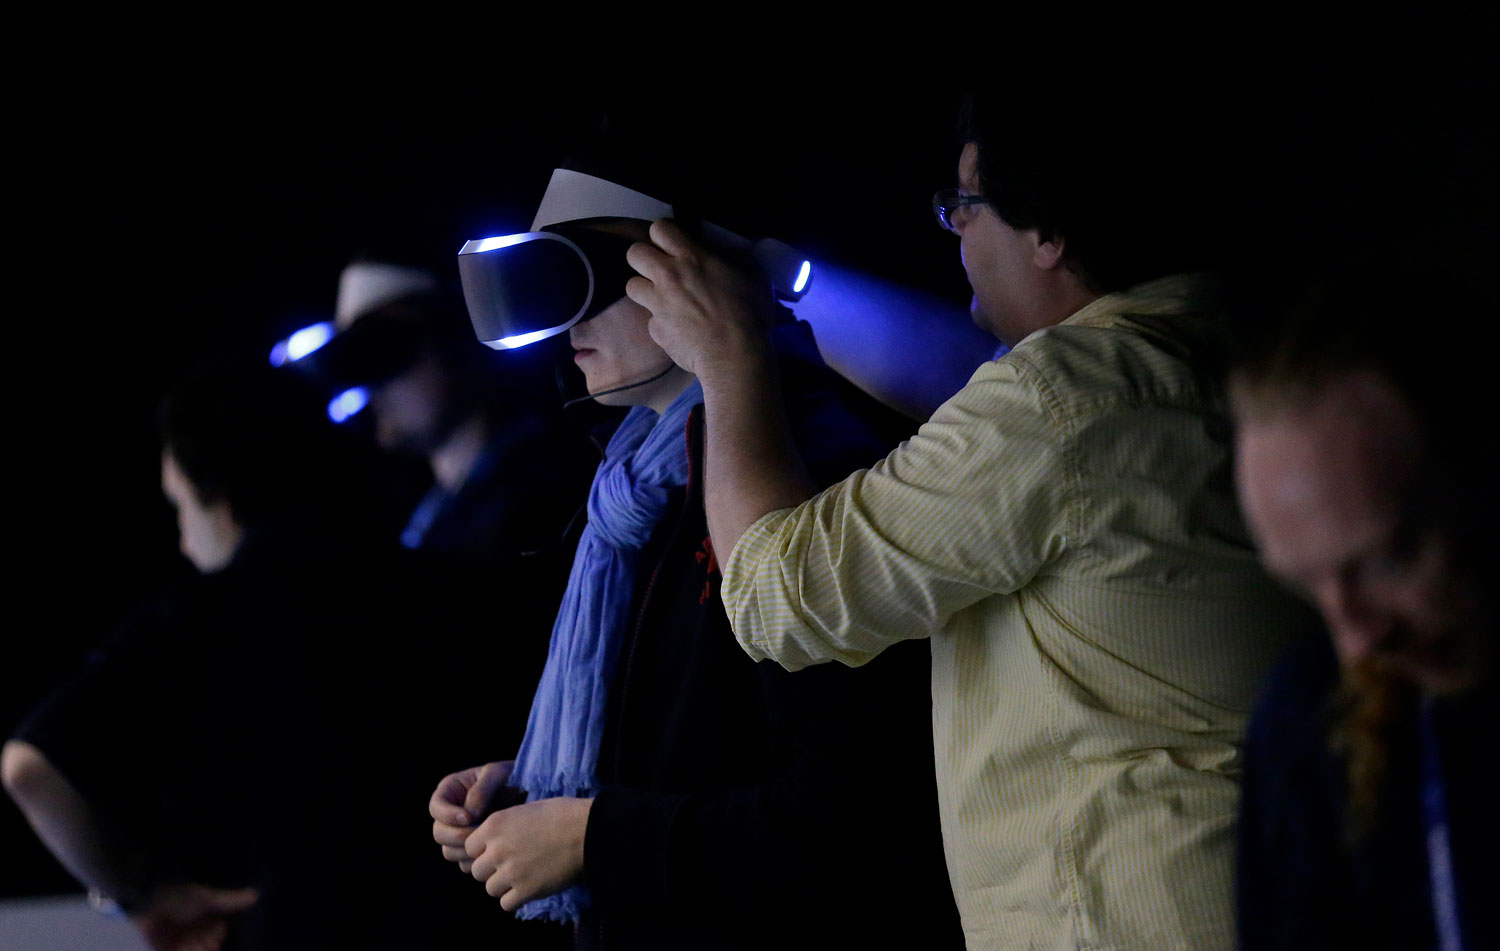 Two men get help putting on the PlayStation 4 virtual reality headset Project Morpheus in a demo area at the Game Developers Conference 2014 in San Francisco on March 19, 2014.